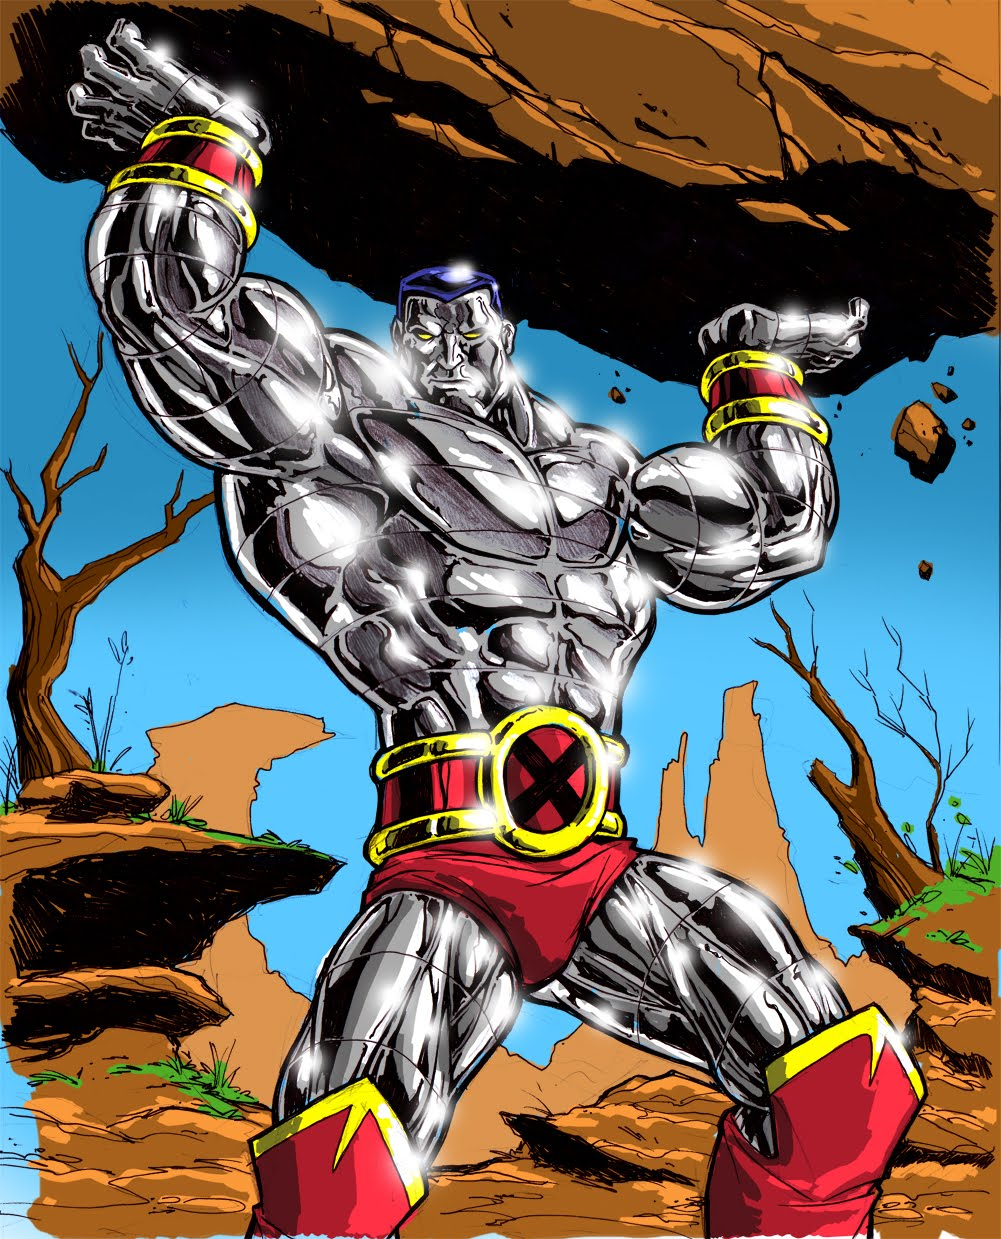 colossus marvel x men - photo #46